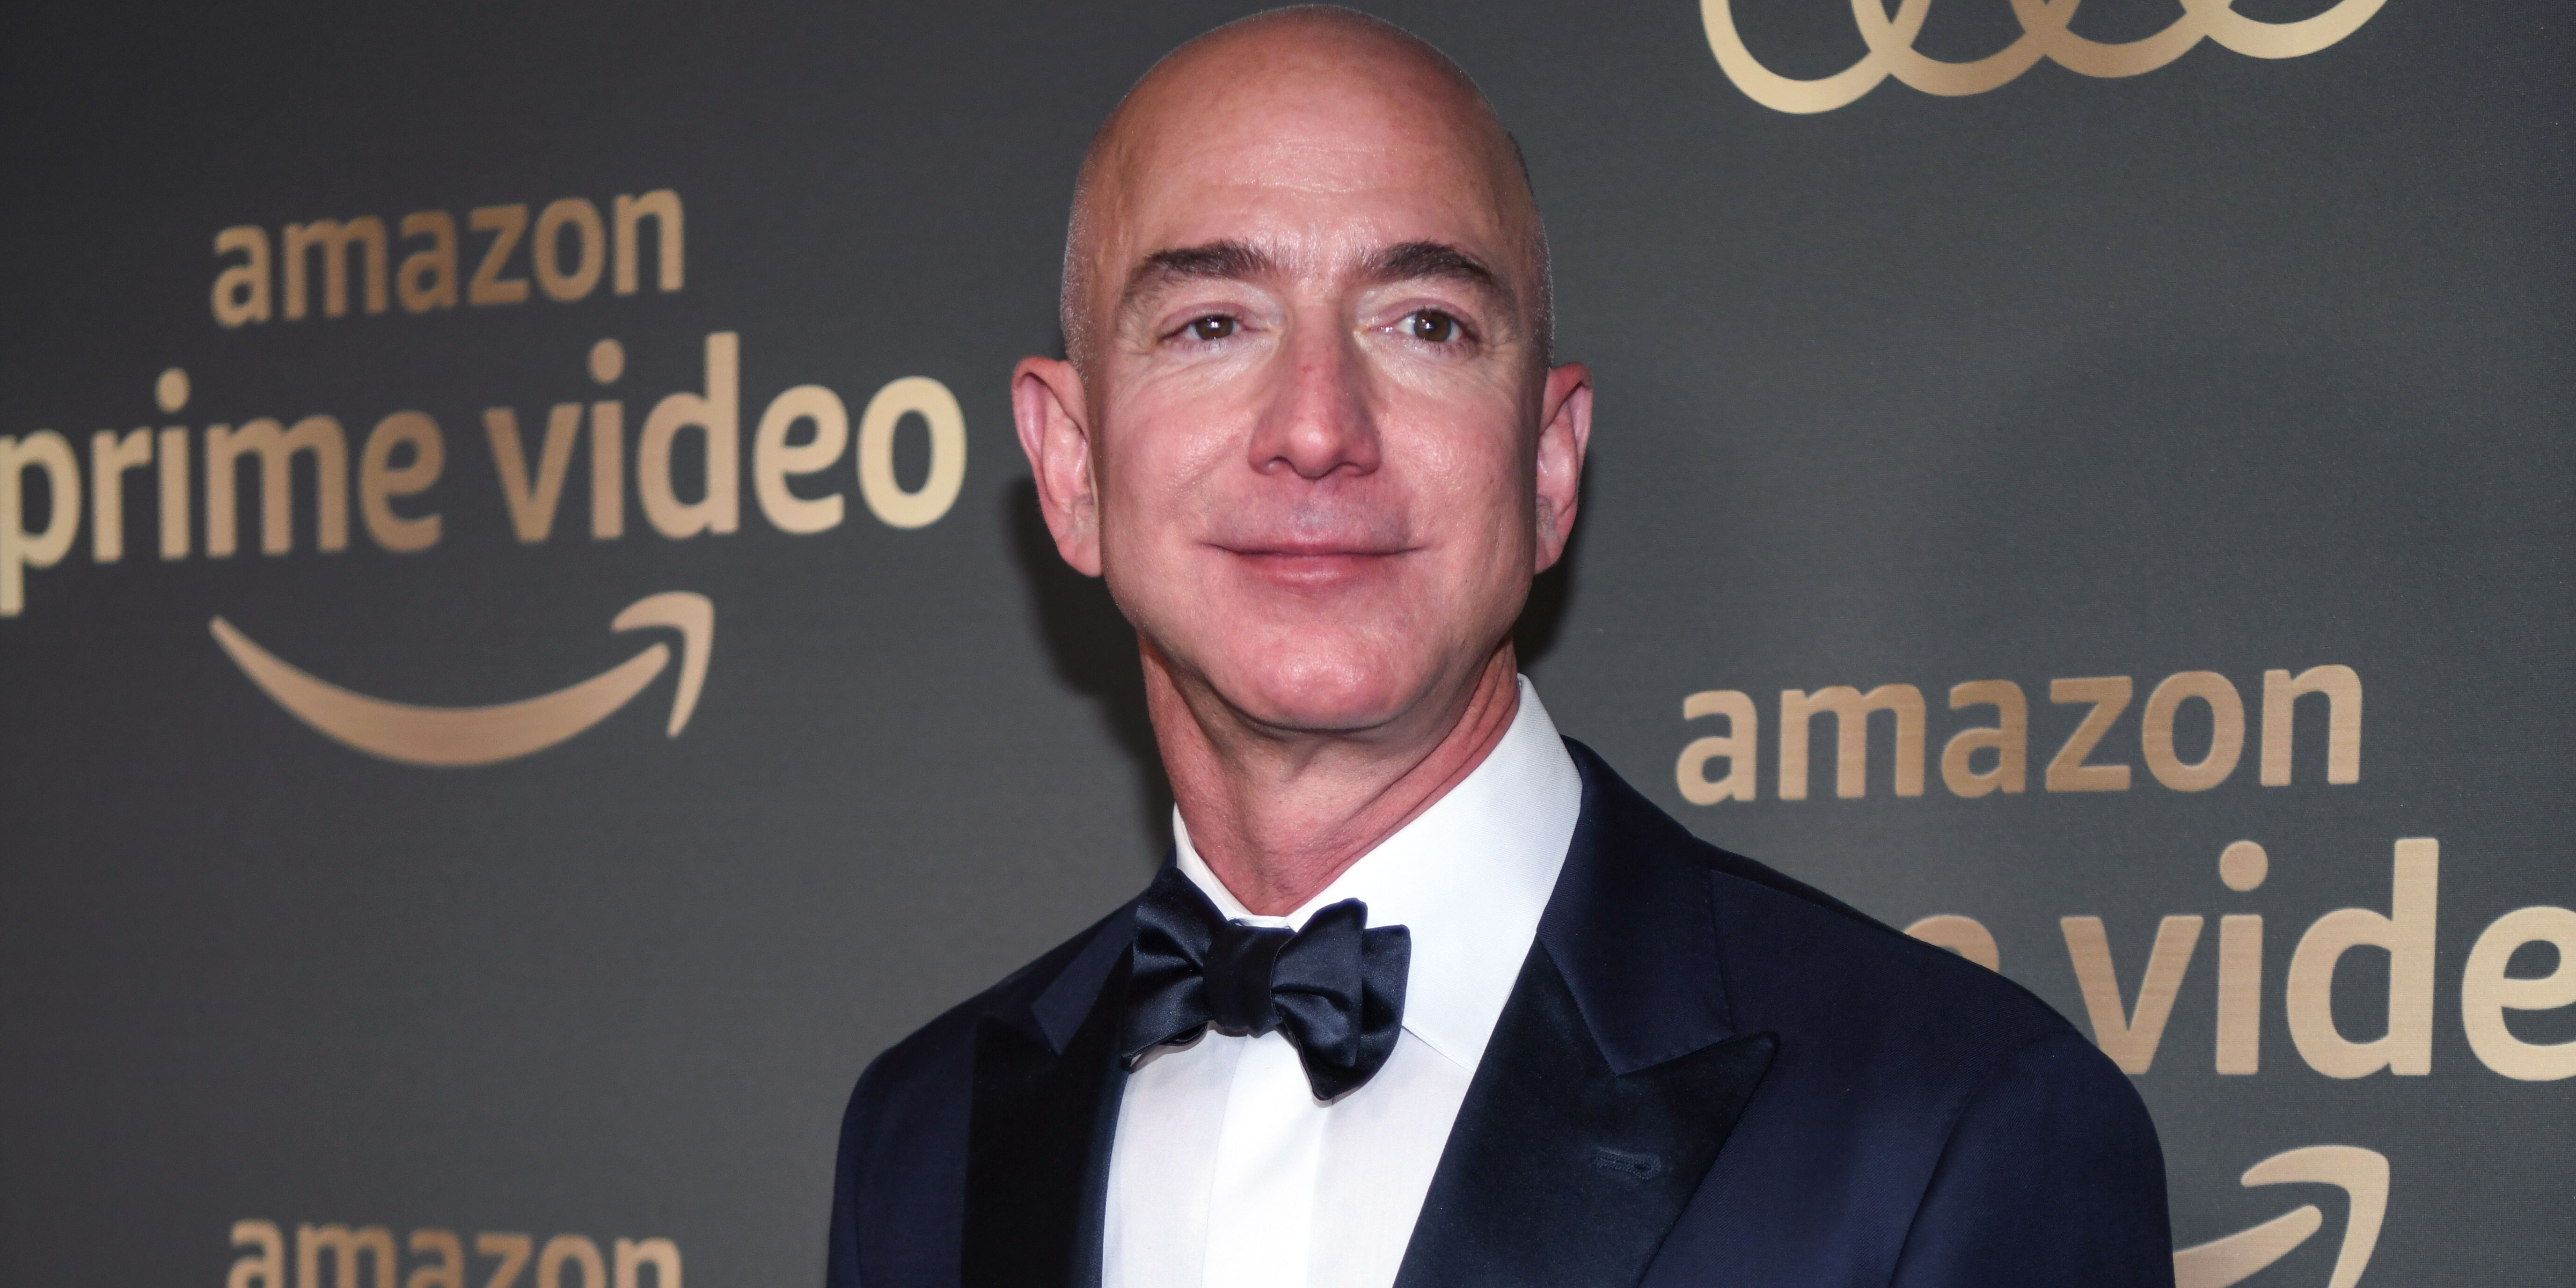 Jeff-Bezos-Ditches- Wedding-Ring-at- First-Public-Event-Since-Lauren- Sanchez-Affair- News - Jeff Bezos arrives at Amazon Prime Video's Golden Globe Awards After Party at The Beverly Hilton Hotel on January 06, 2019 in Beverly Hills, California.